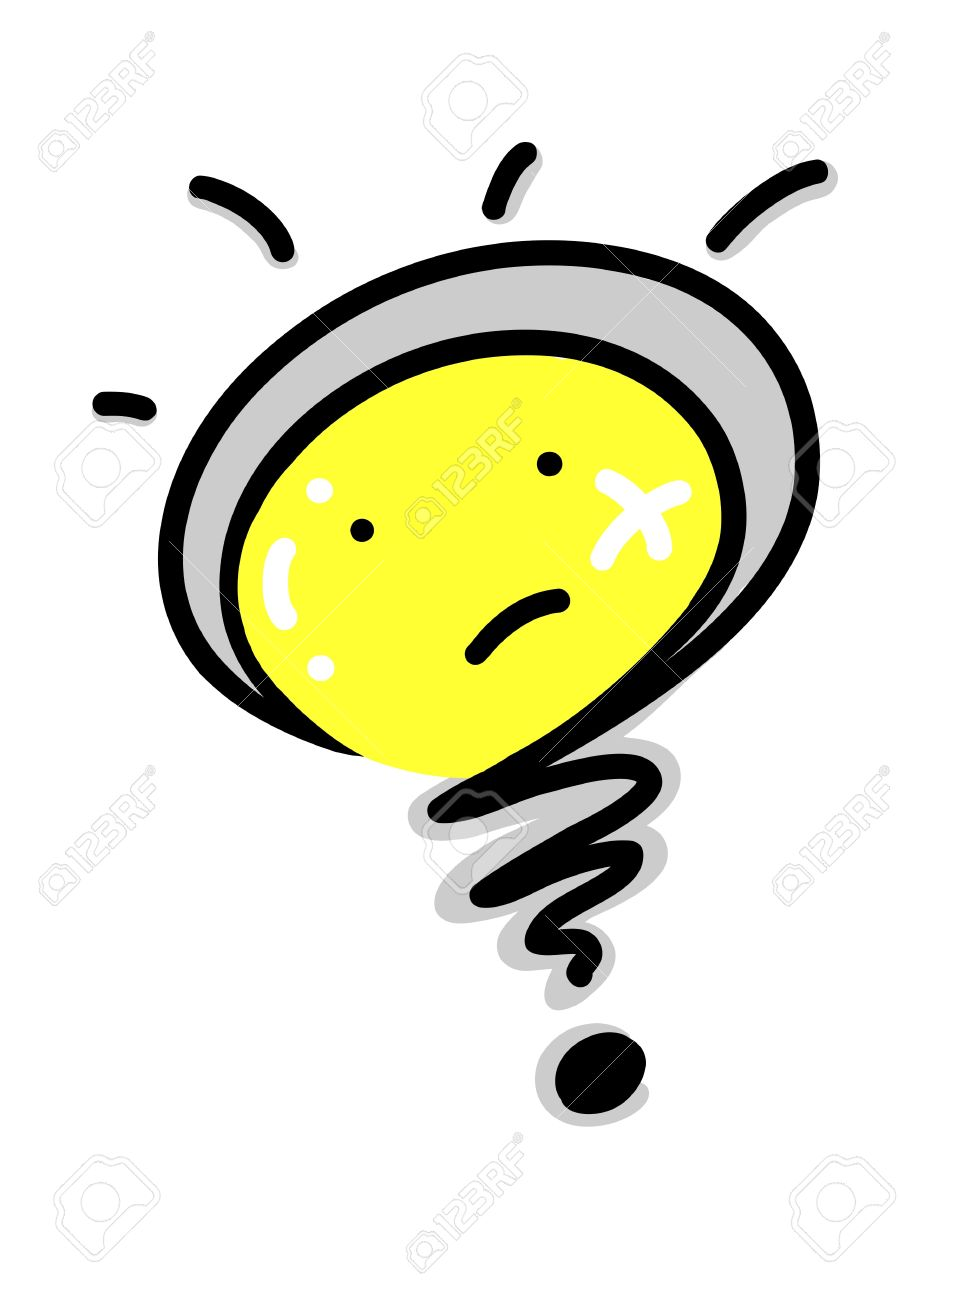 Spiration Concept and Hot Idea, A Funny Cartoon of Glowing Yellow Electric Light Lulb Inside A Question Symbol Stock Vector - 17417566